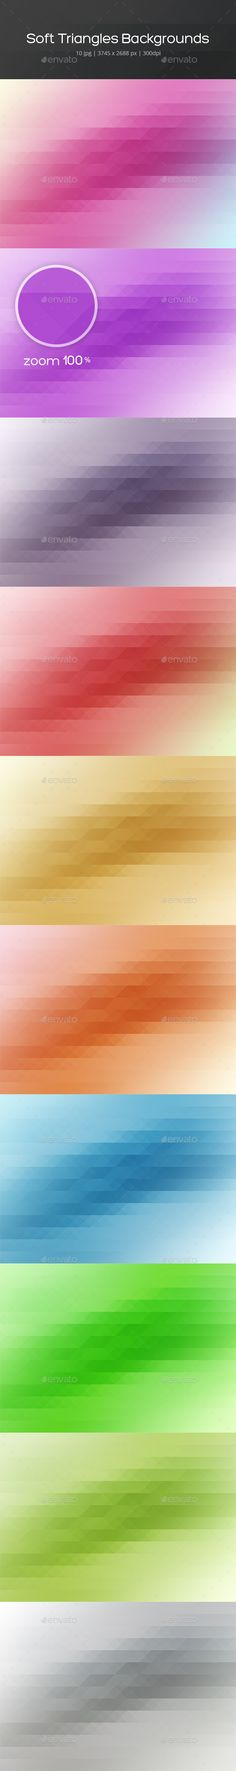 Soft Triangles Backgrounds